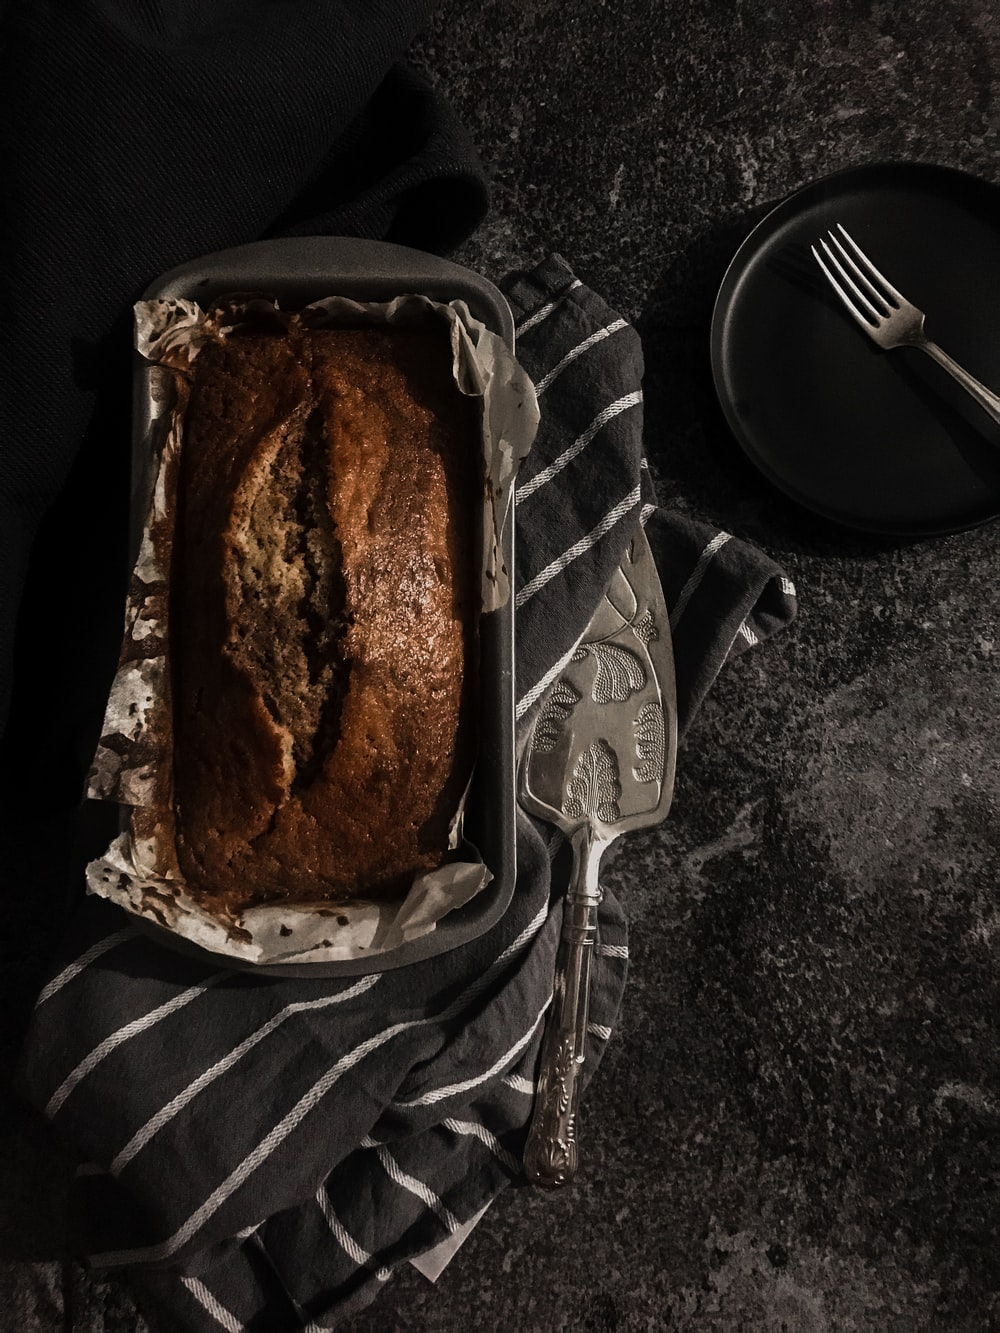 brown bread on stainless steel tray